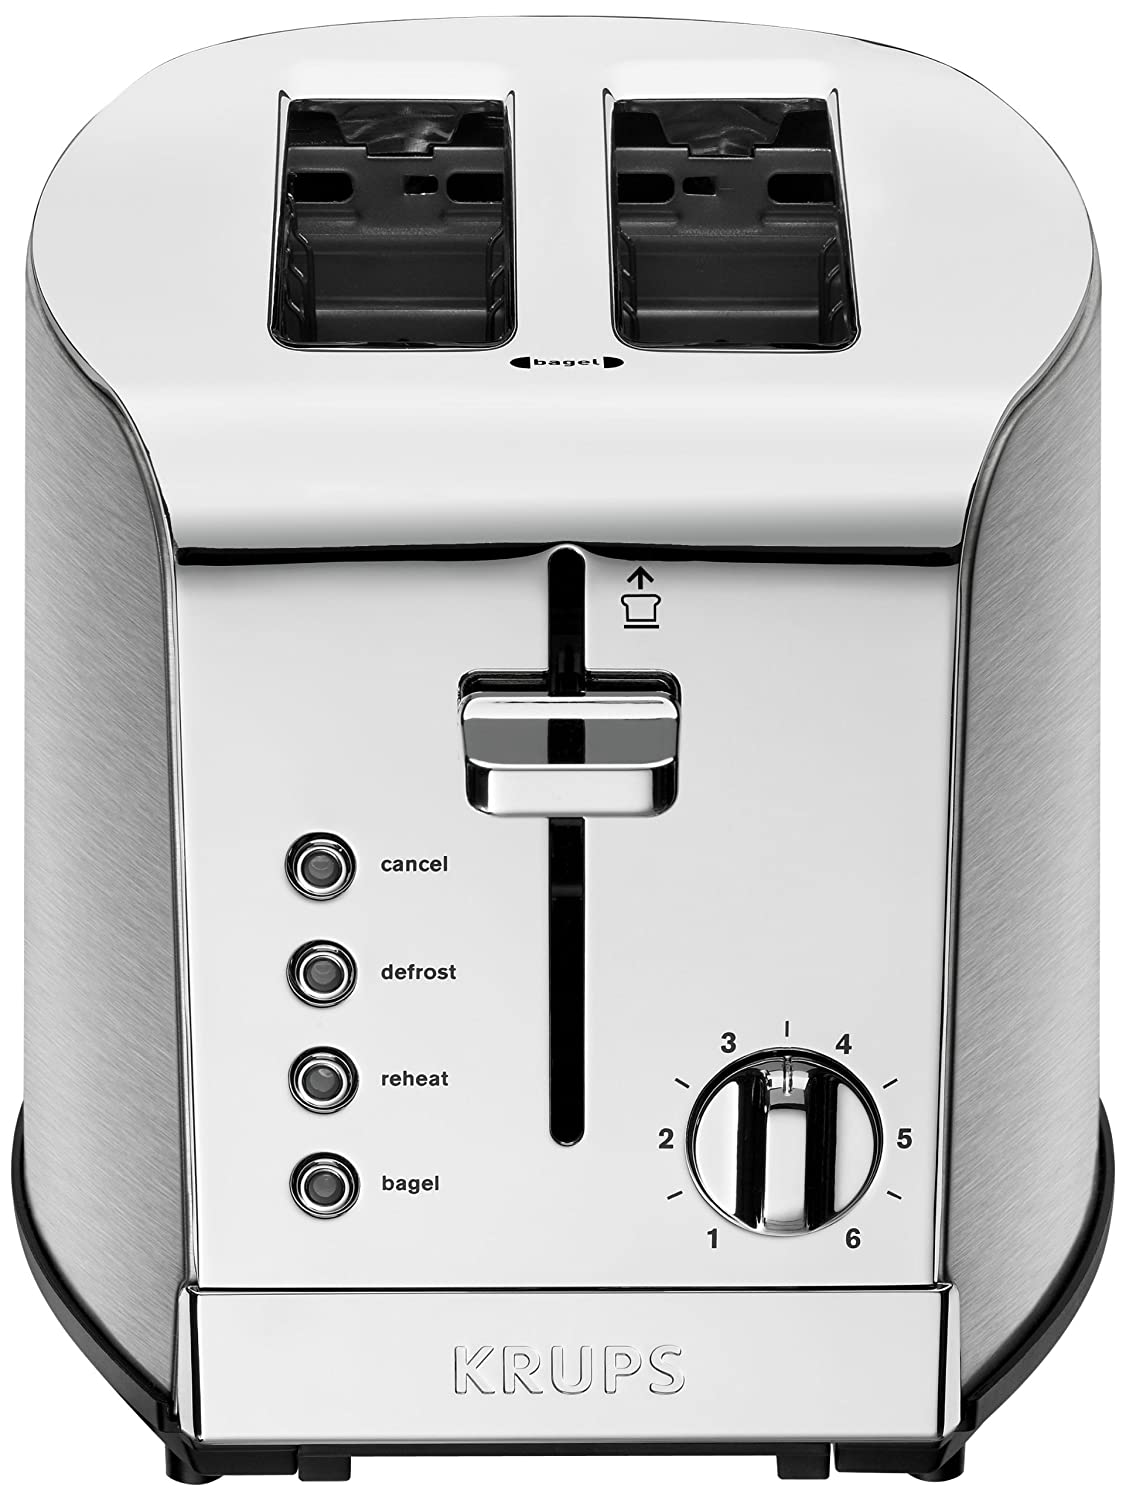 KRUPS KH732D50 Toaster, 2-Slice, Stainless Steel (Renewed)